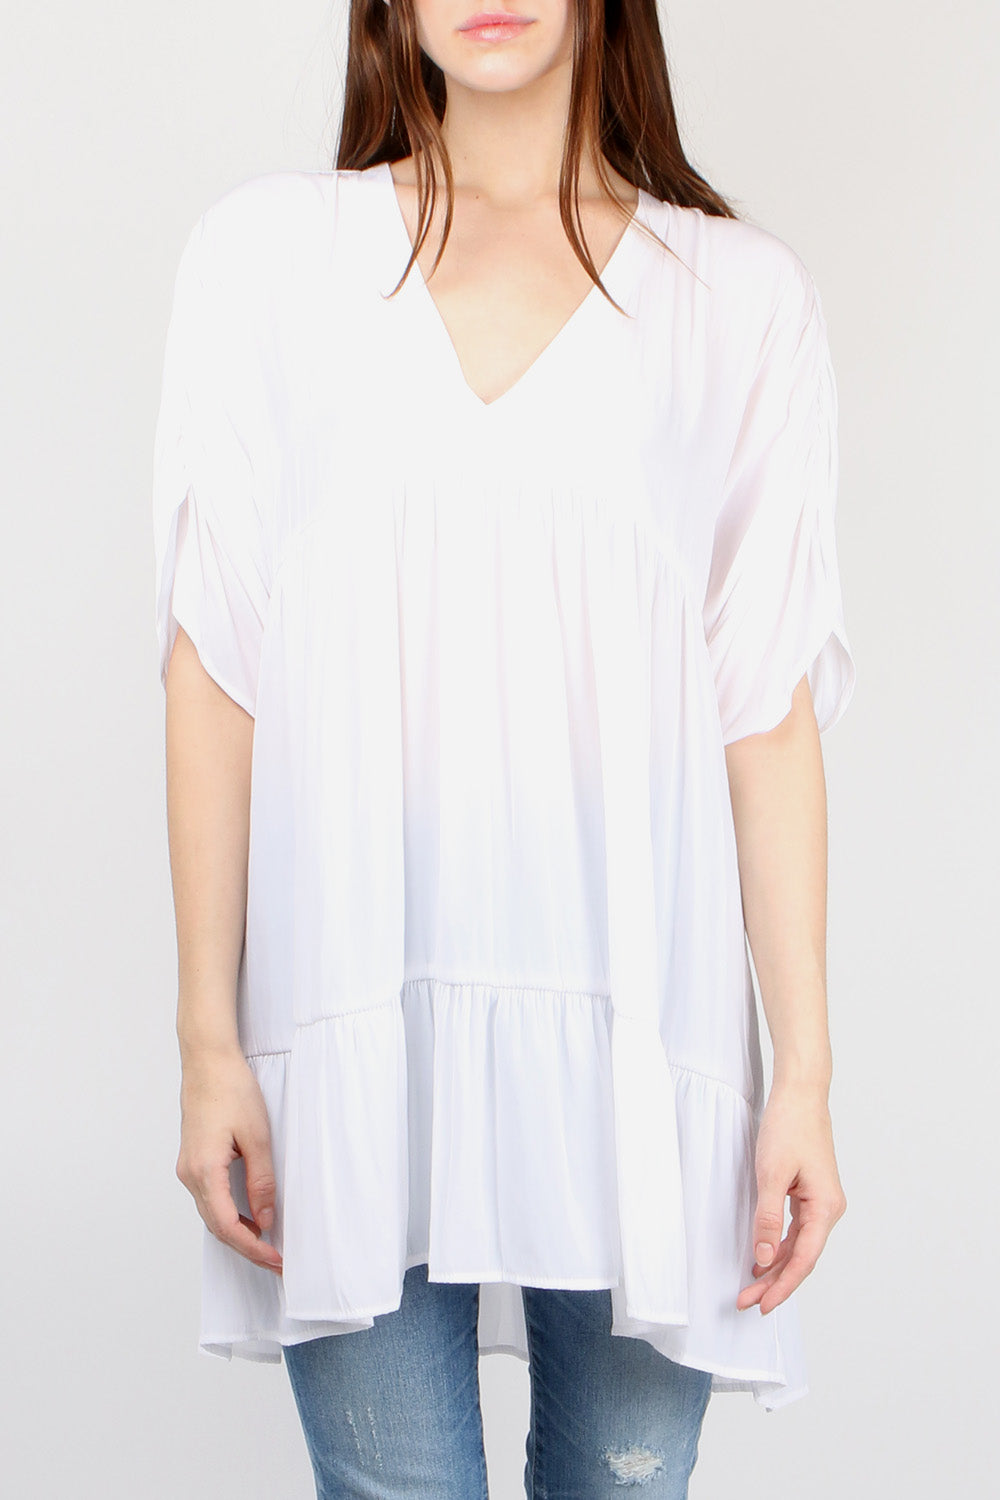 Smythe Tiered Tunic in Chalk